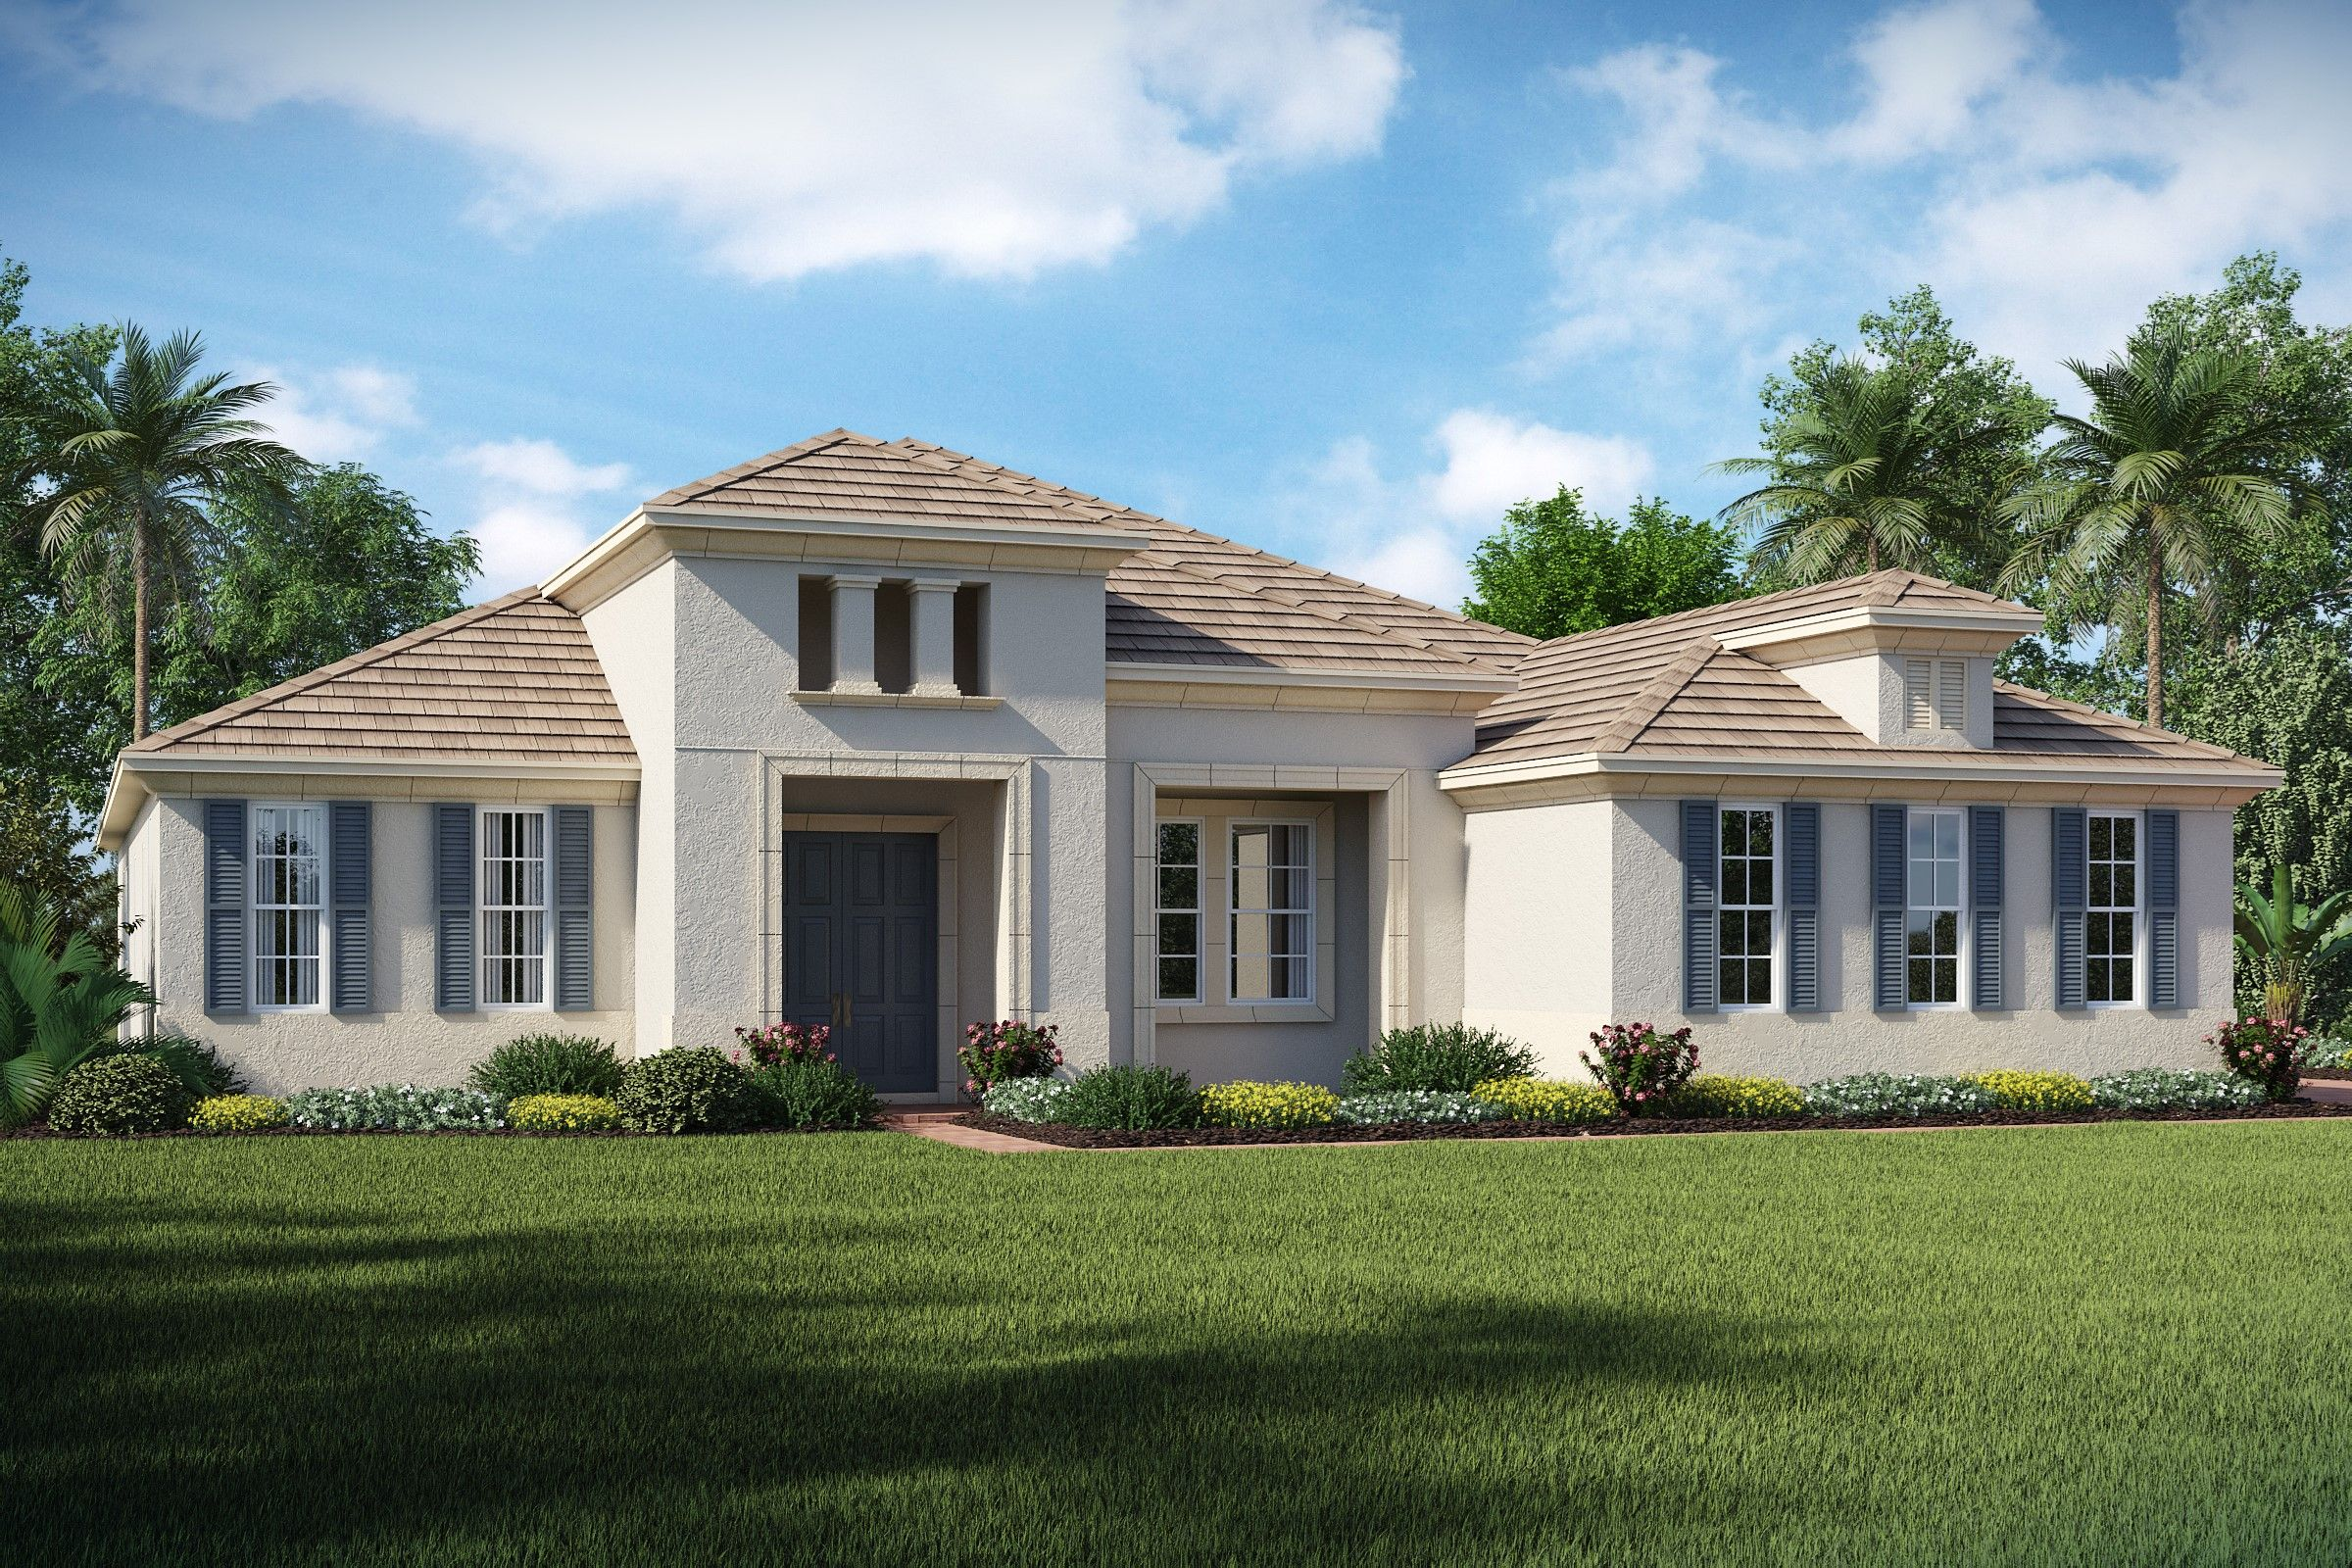 Single Family for Sale at Redtail - Serengetti 32049 Red Tail Blvd Sorrento, Florida 32776 United States